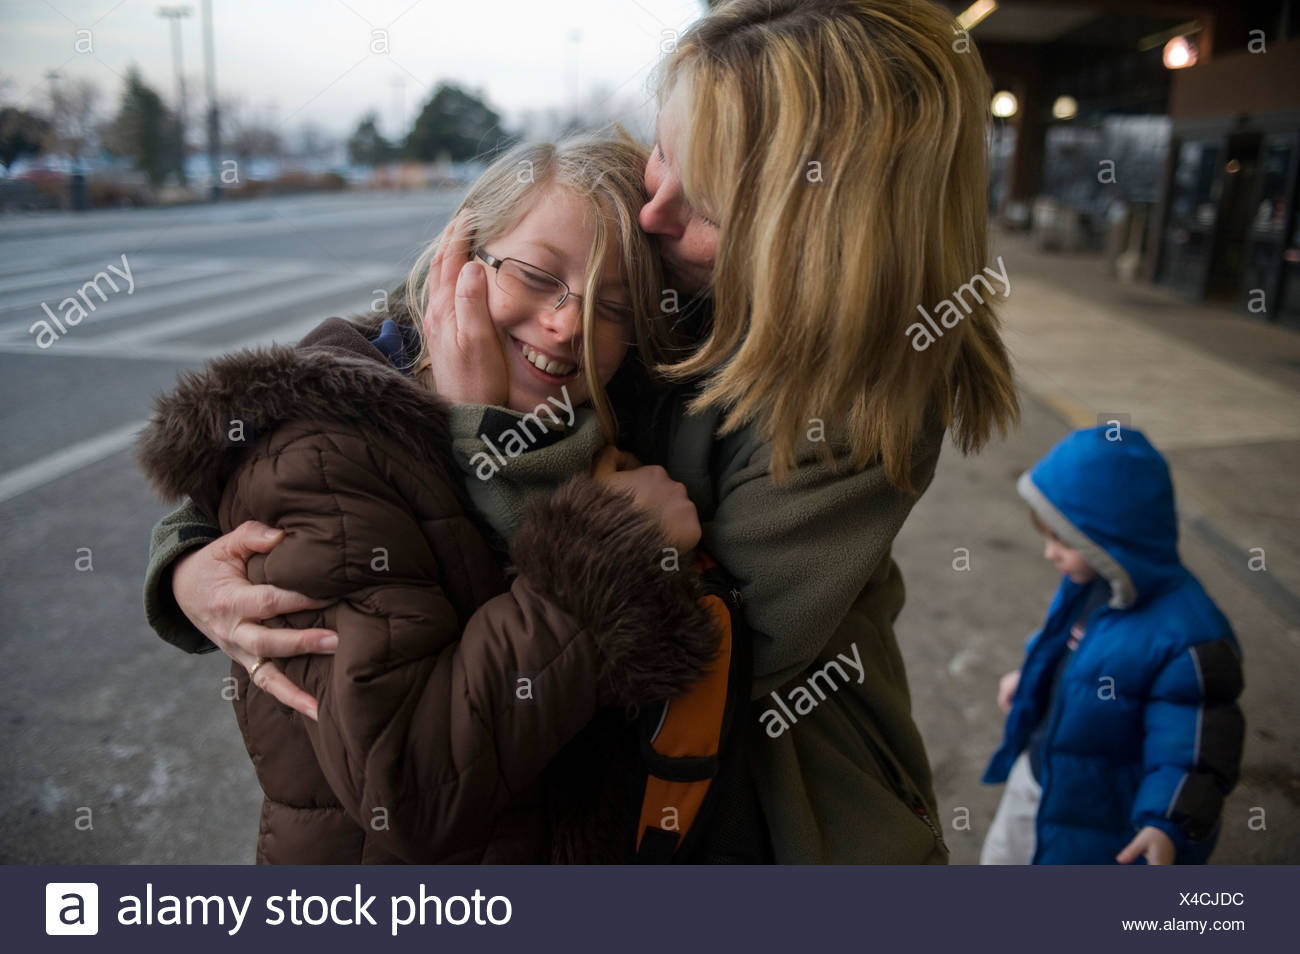 A woman is greeted by her daughter after a long trip. - Stock Image